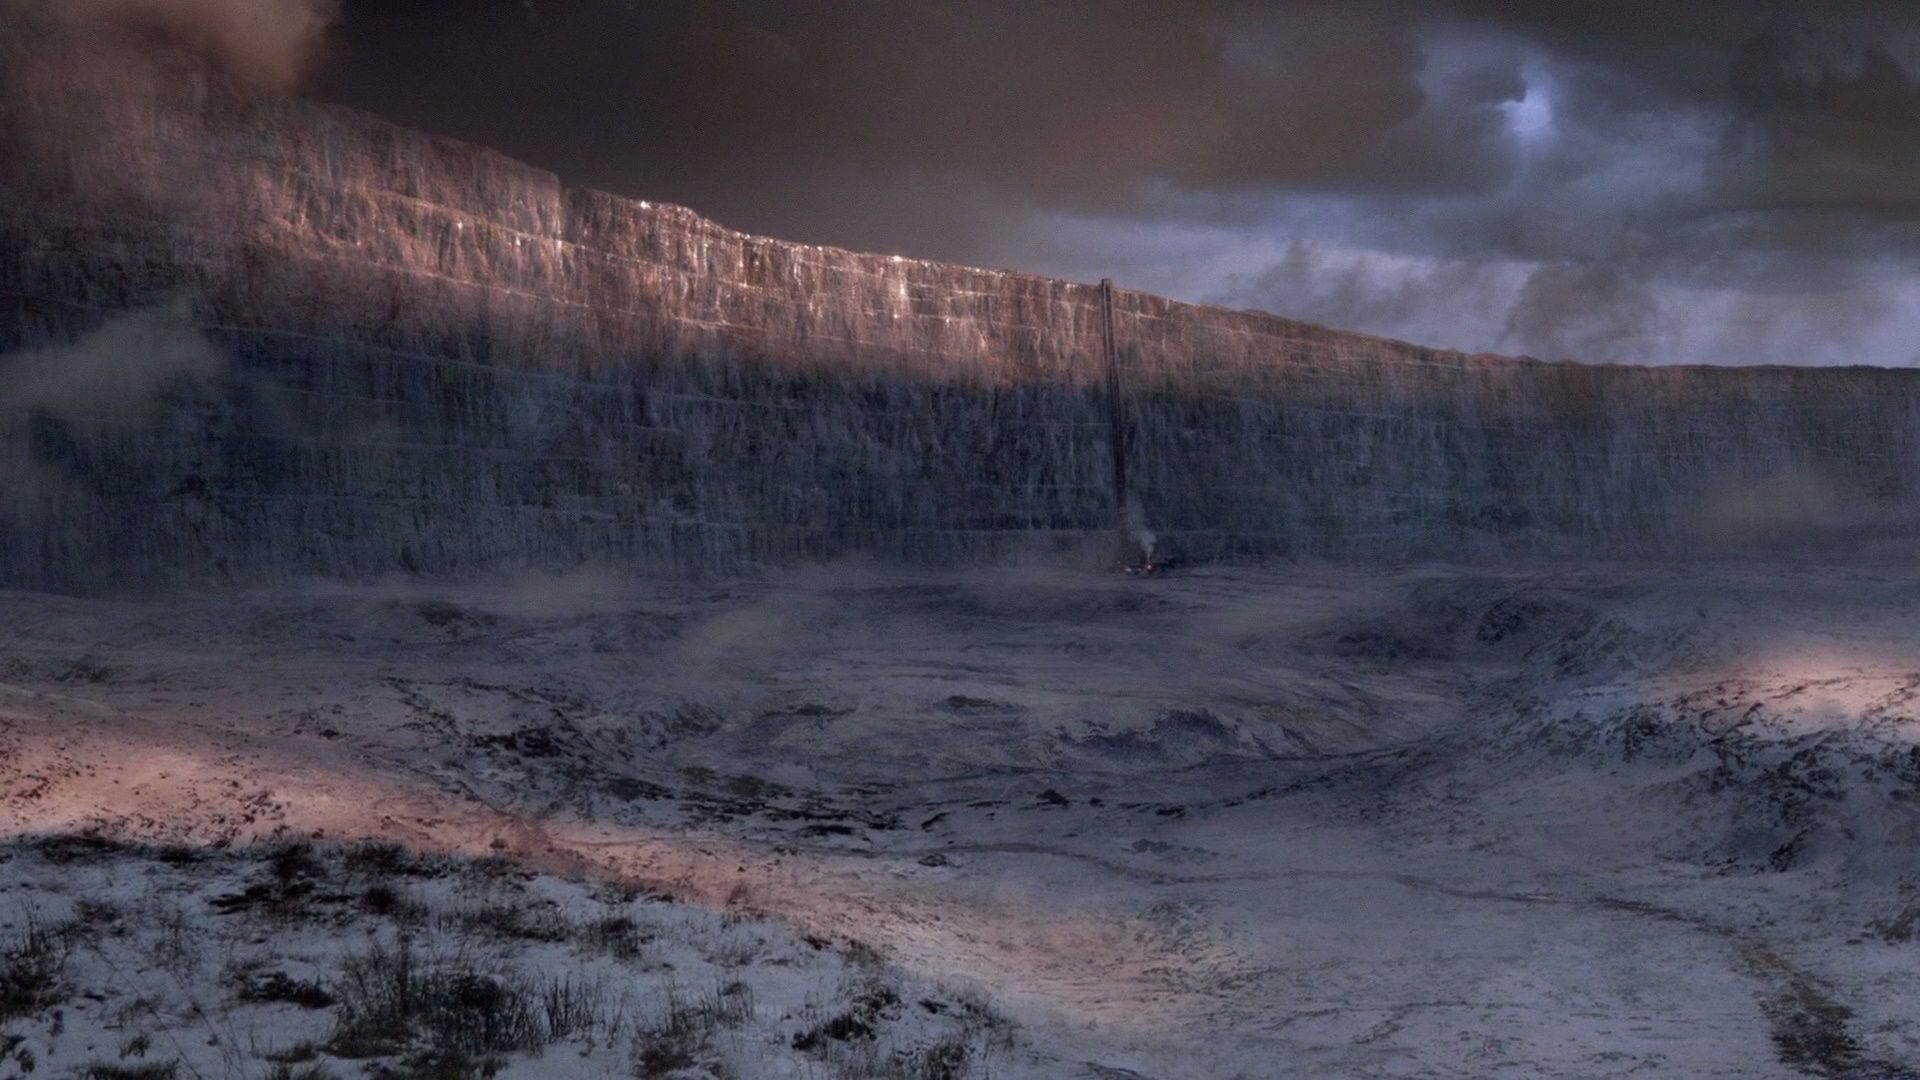 Game of Thrones landscape winter wall